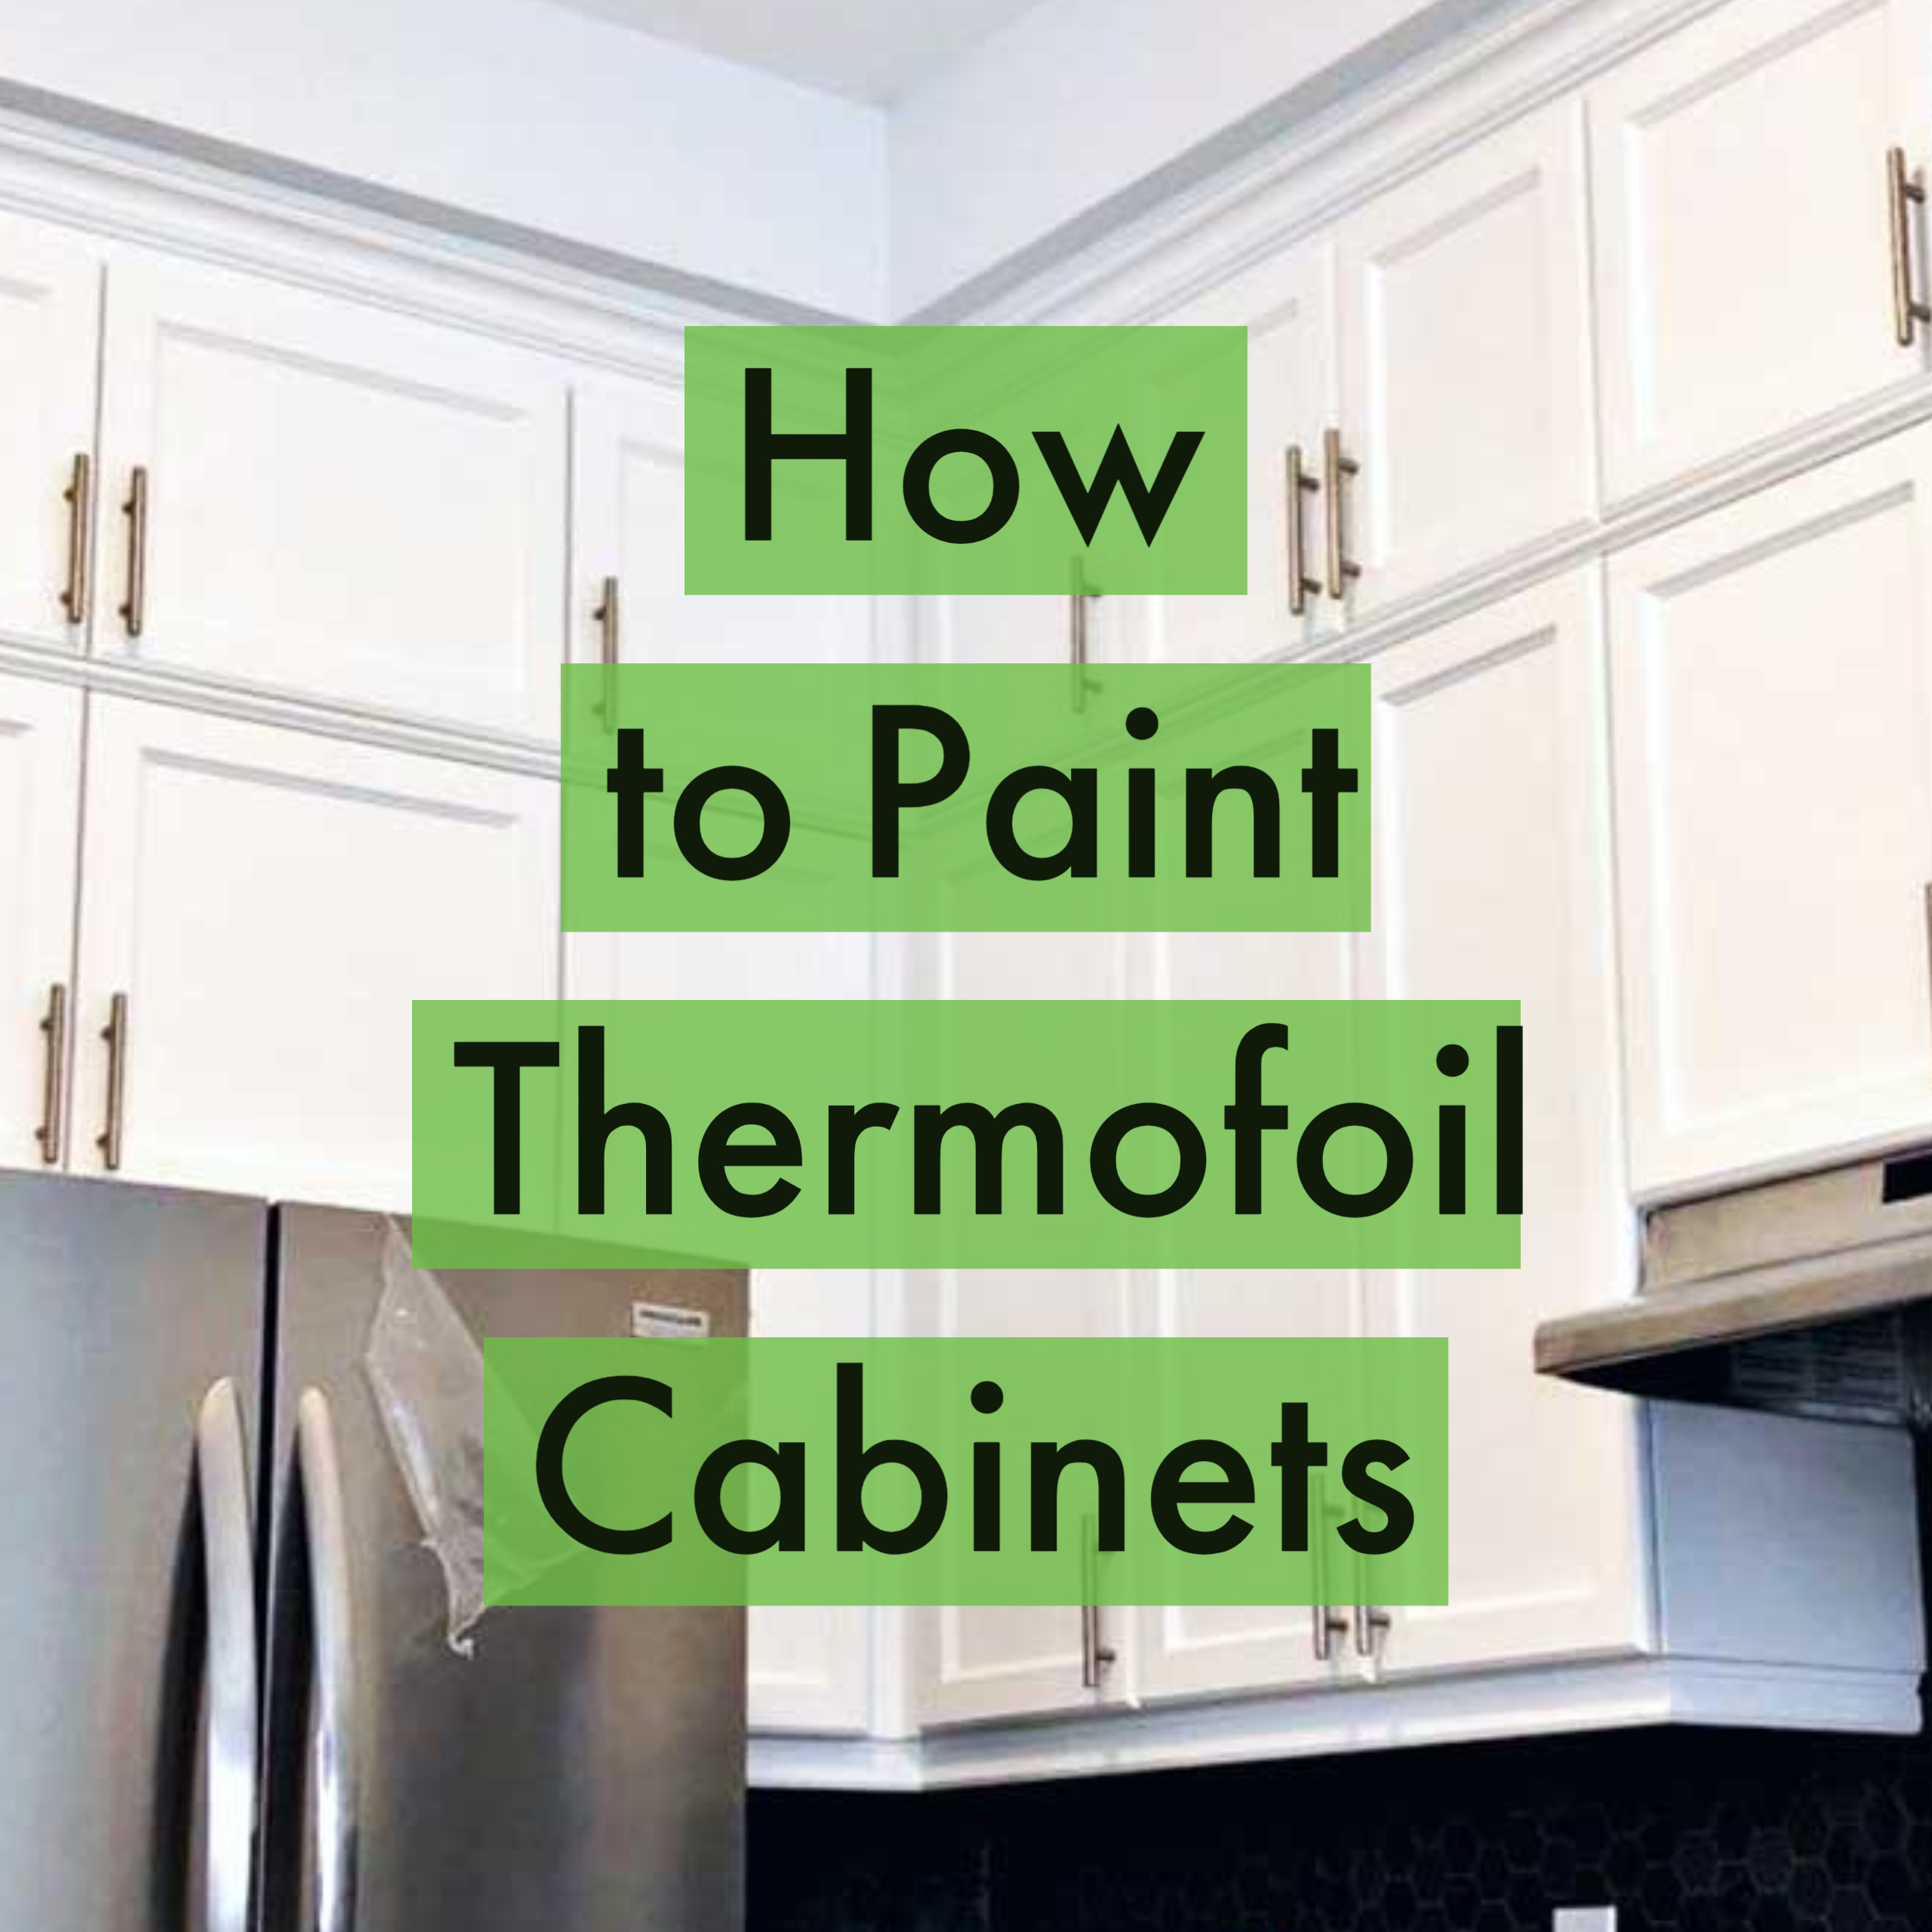 Painting Thermofoil Cabinets How To Home Painters Toronto